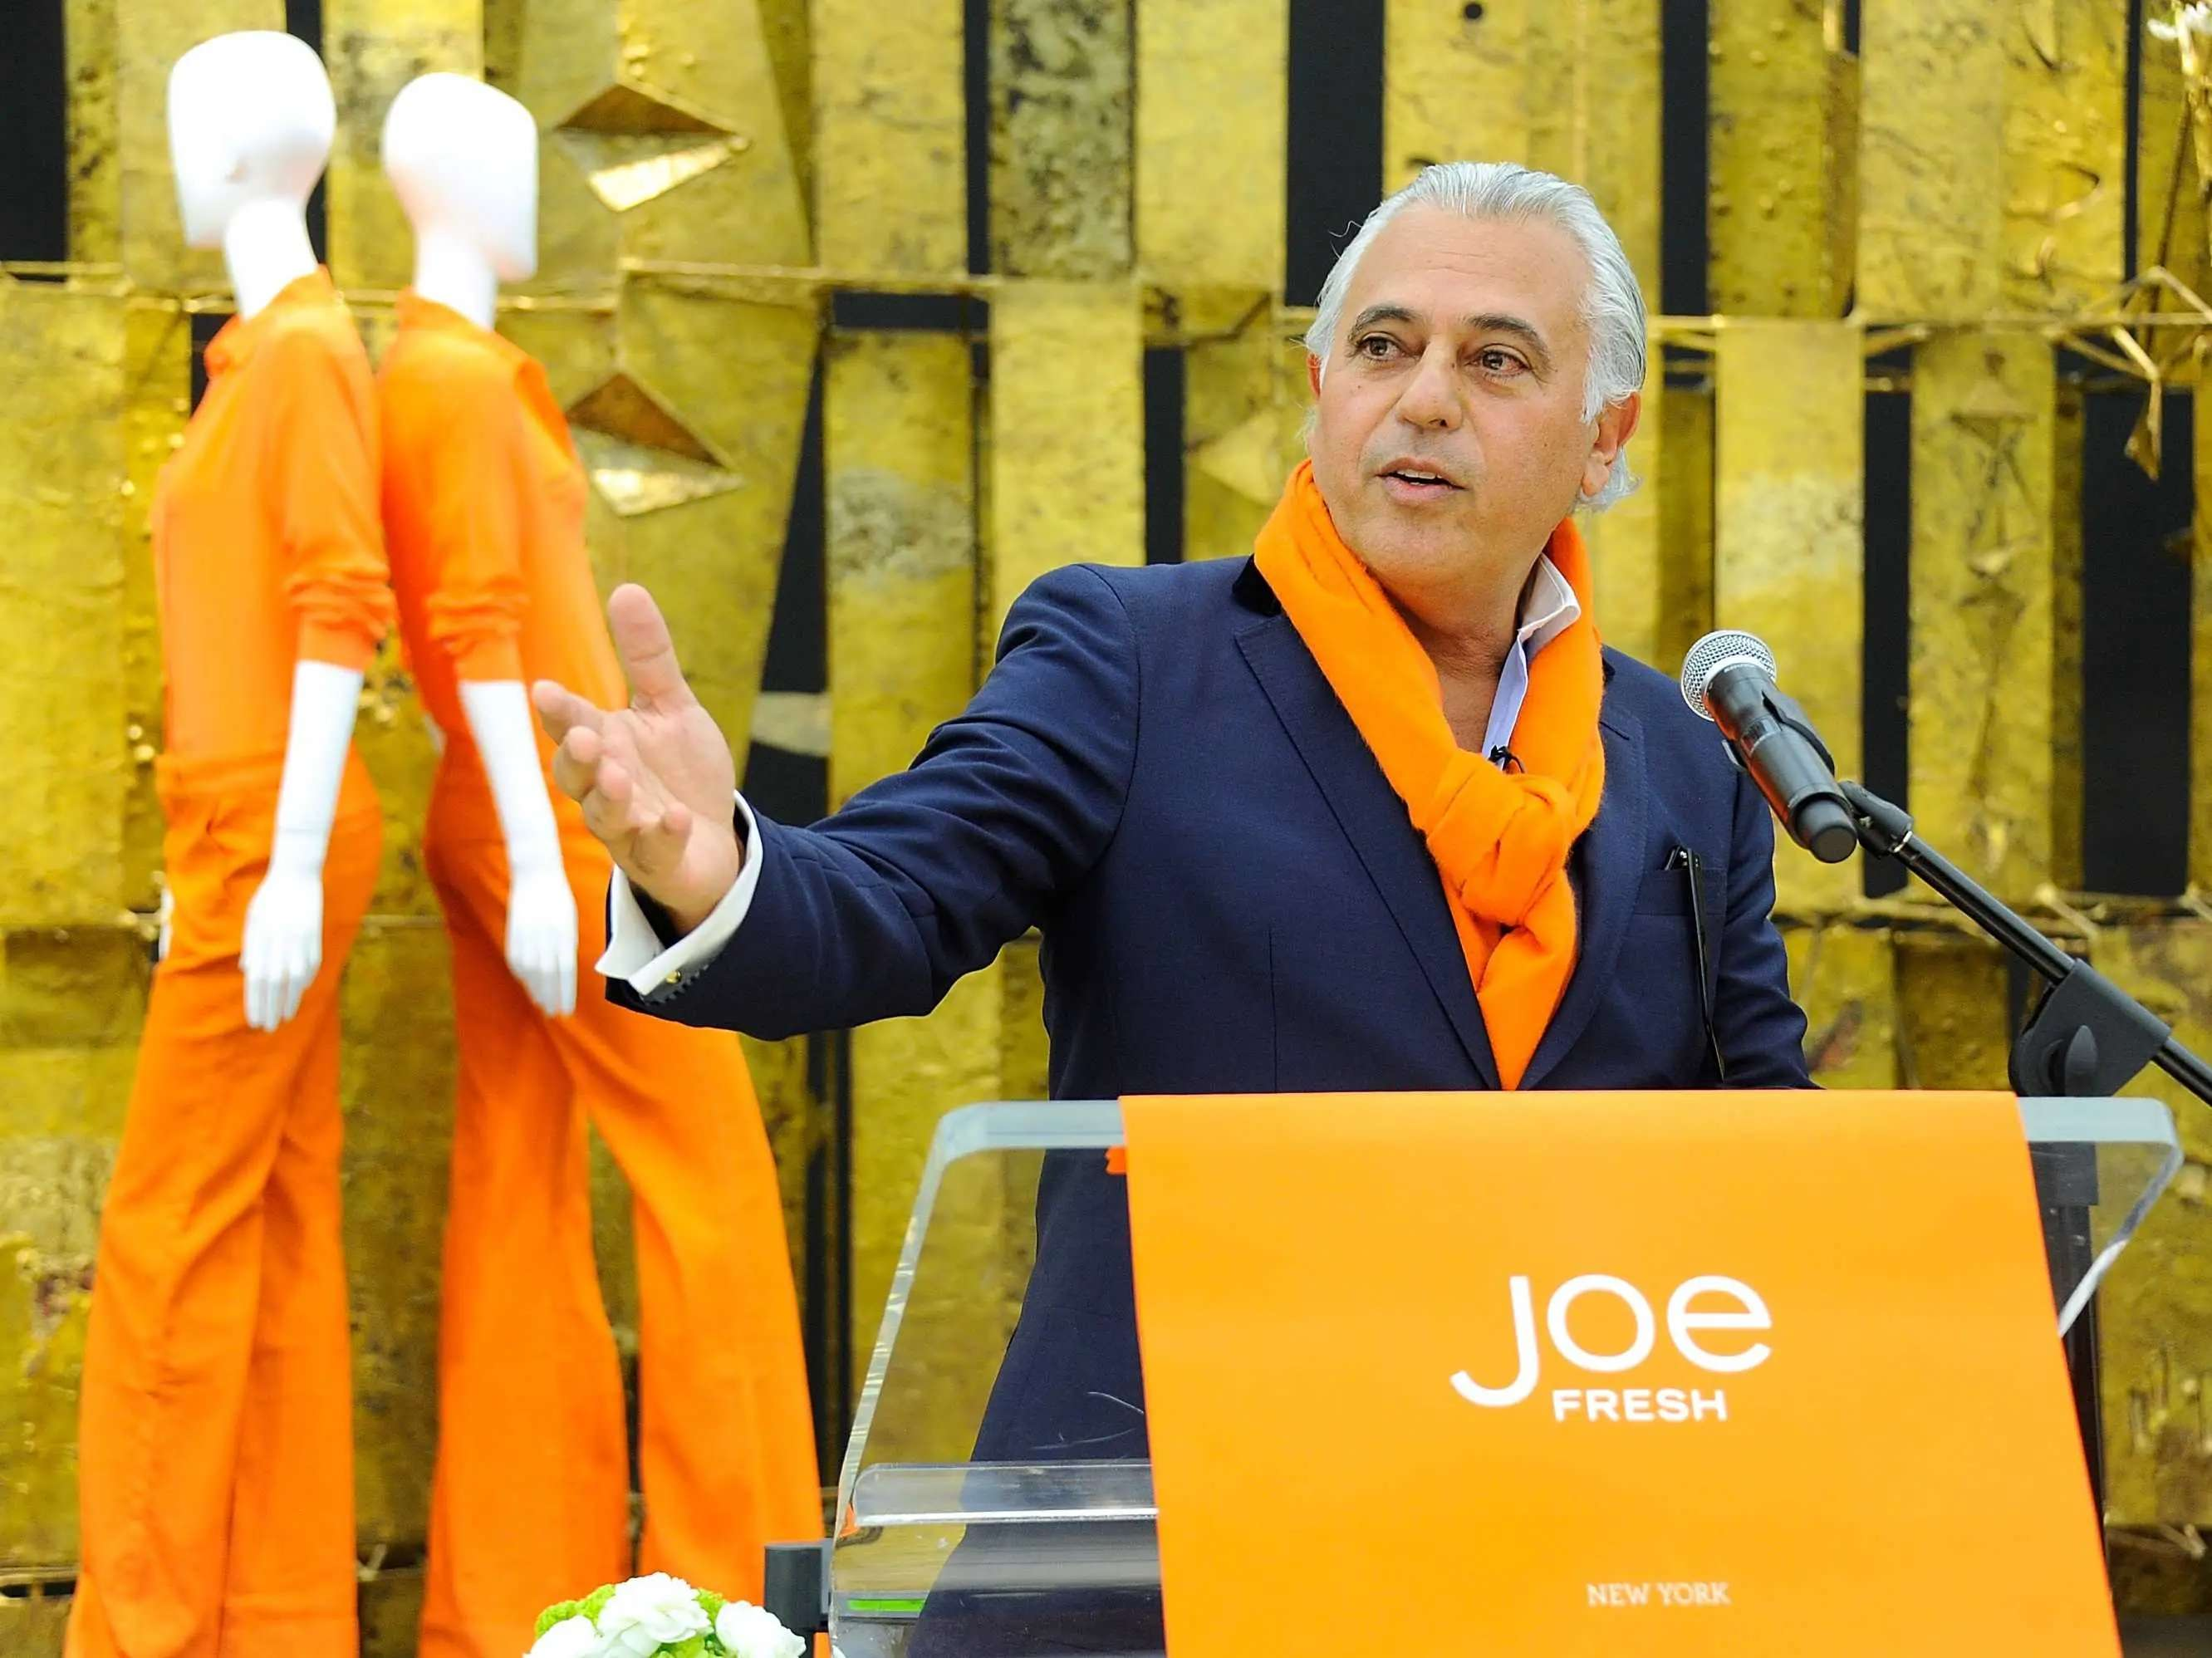 Joe Fresh was launched by designer Joe Mimran in 2006.